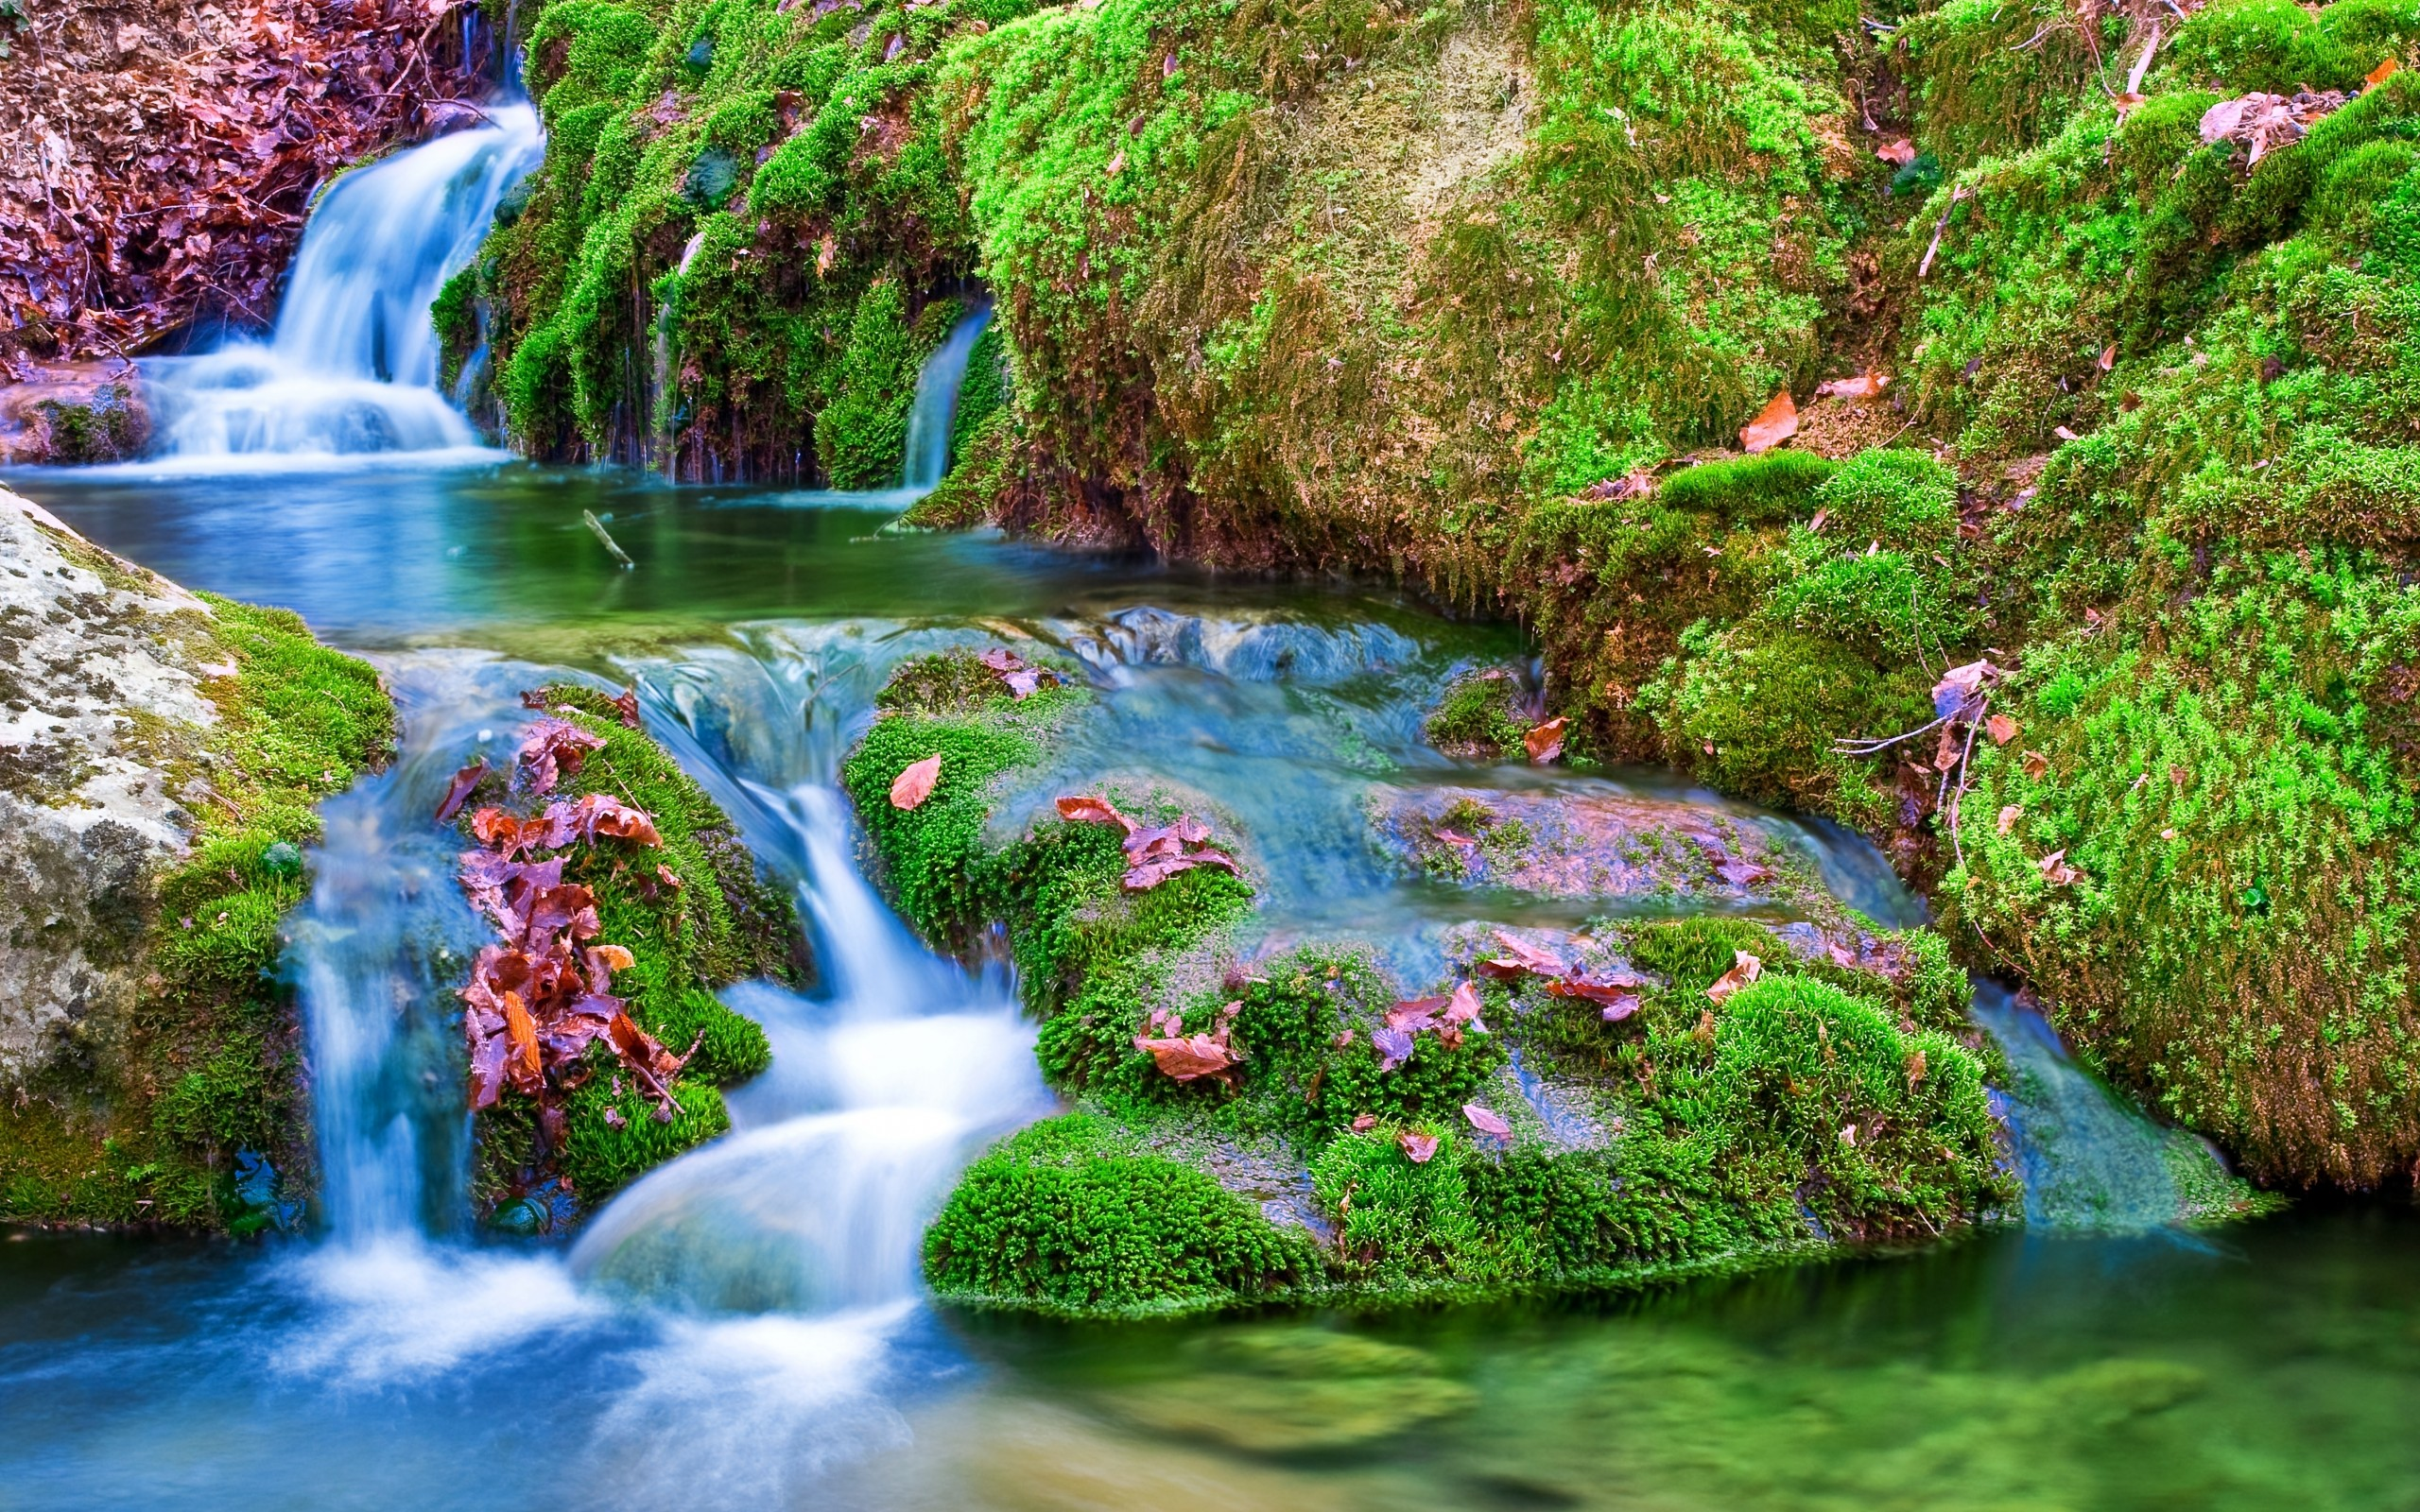 nature-waterfall-wallpaper-background-hd-wallpapers | wallpaper.wiki